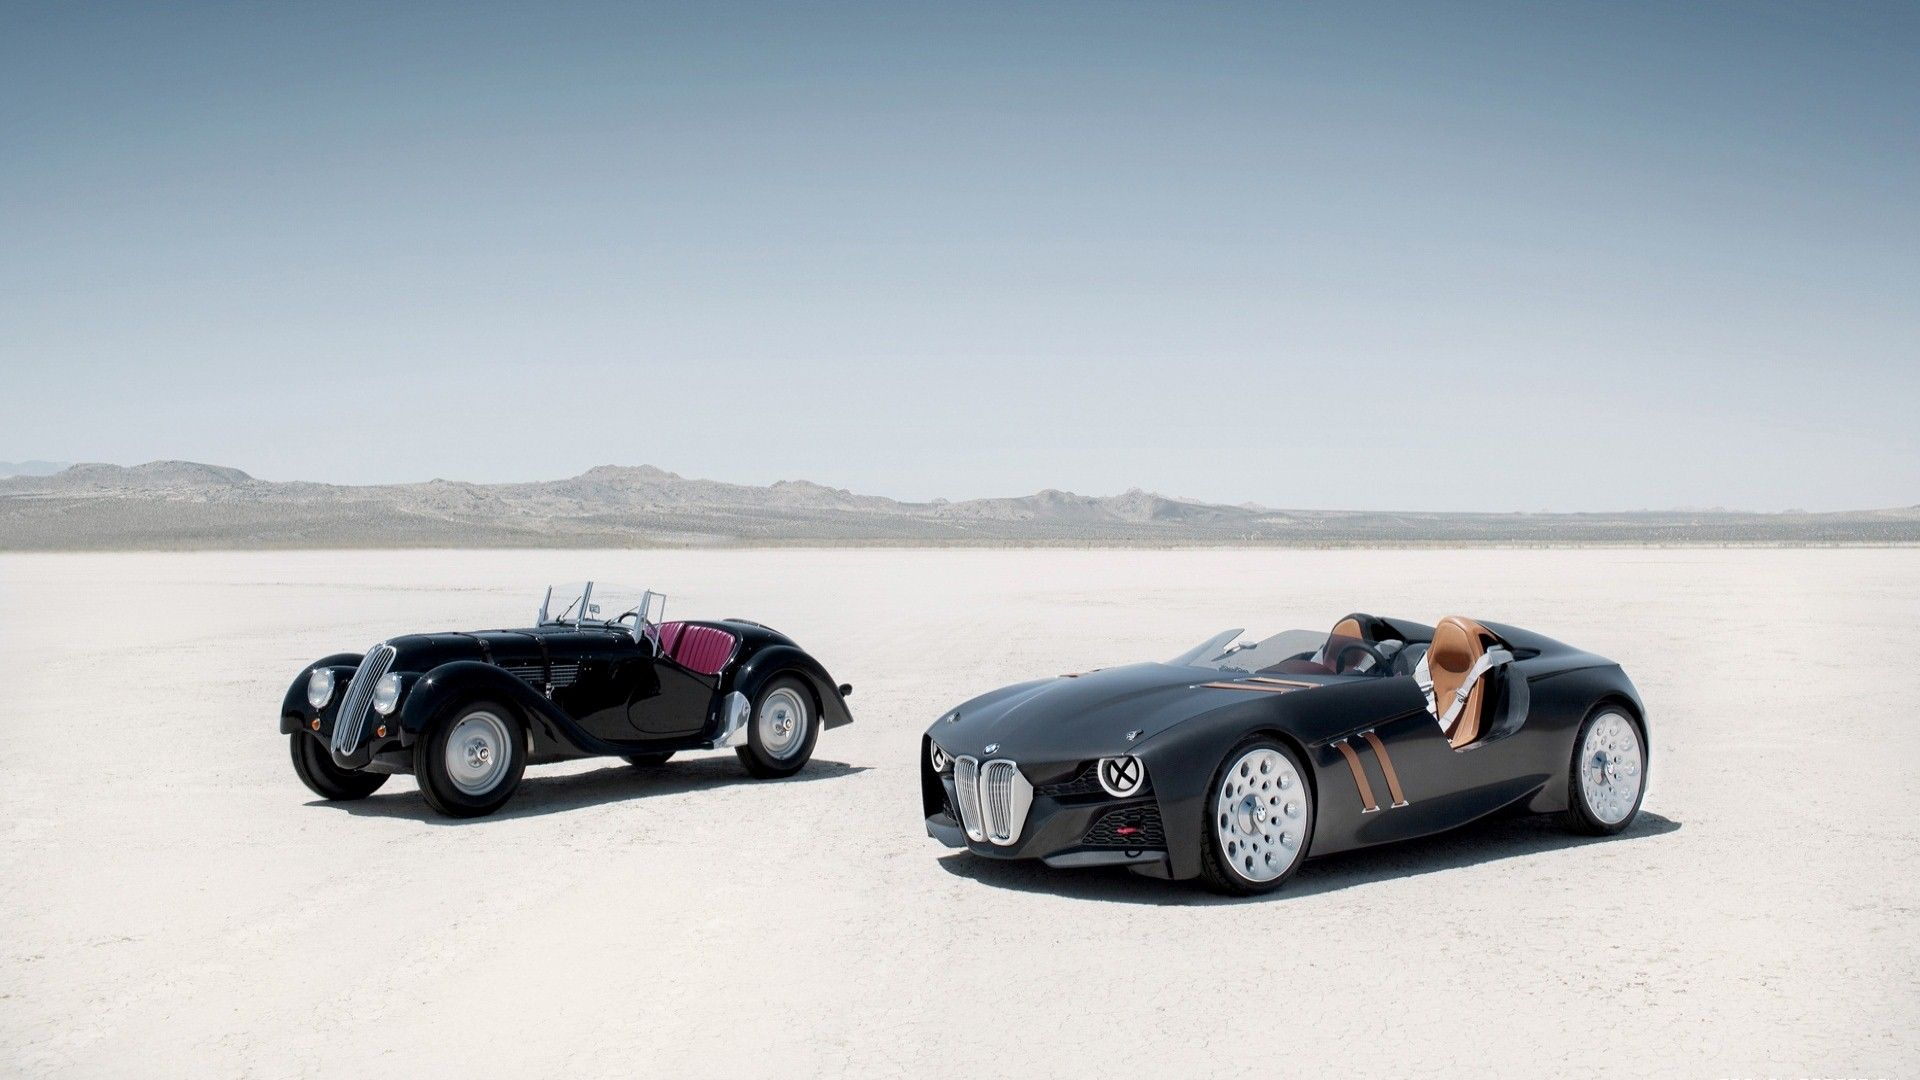 Bmw 328 Hommage Cost Cars Wallpapers Bmw 328 Bmw Classic Sports Cars